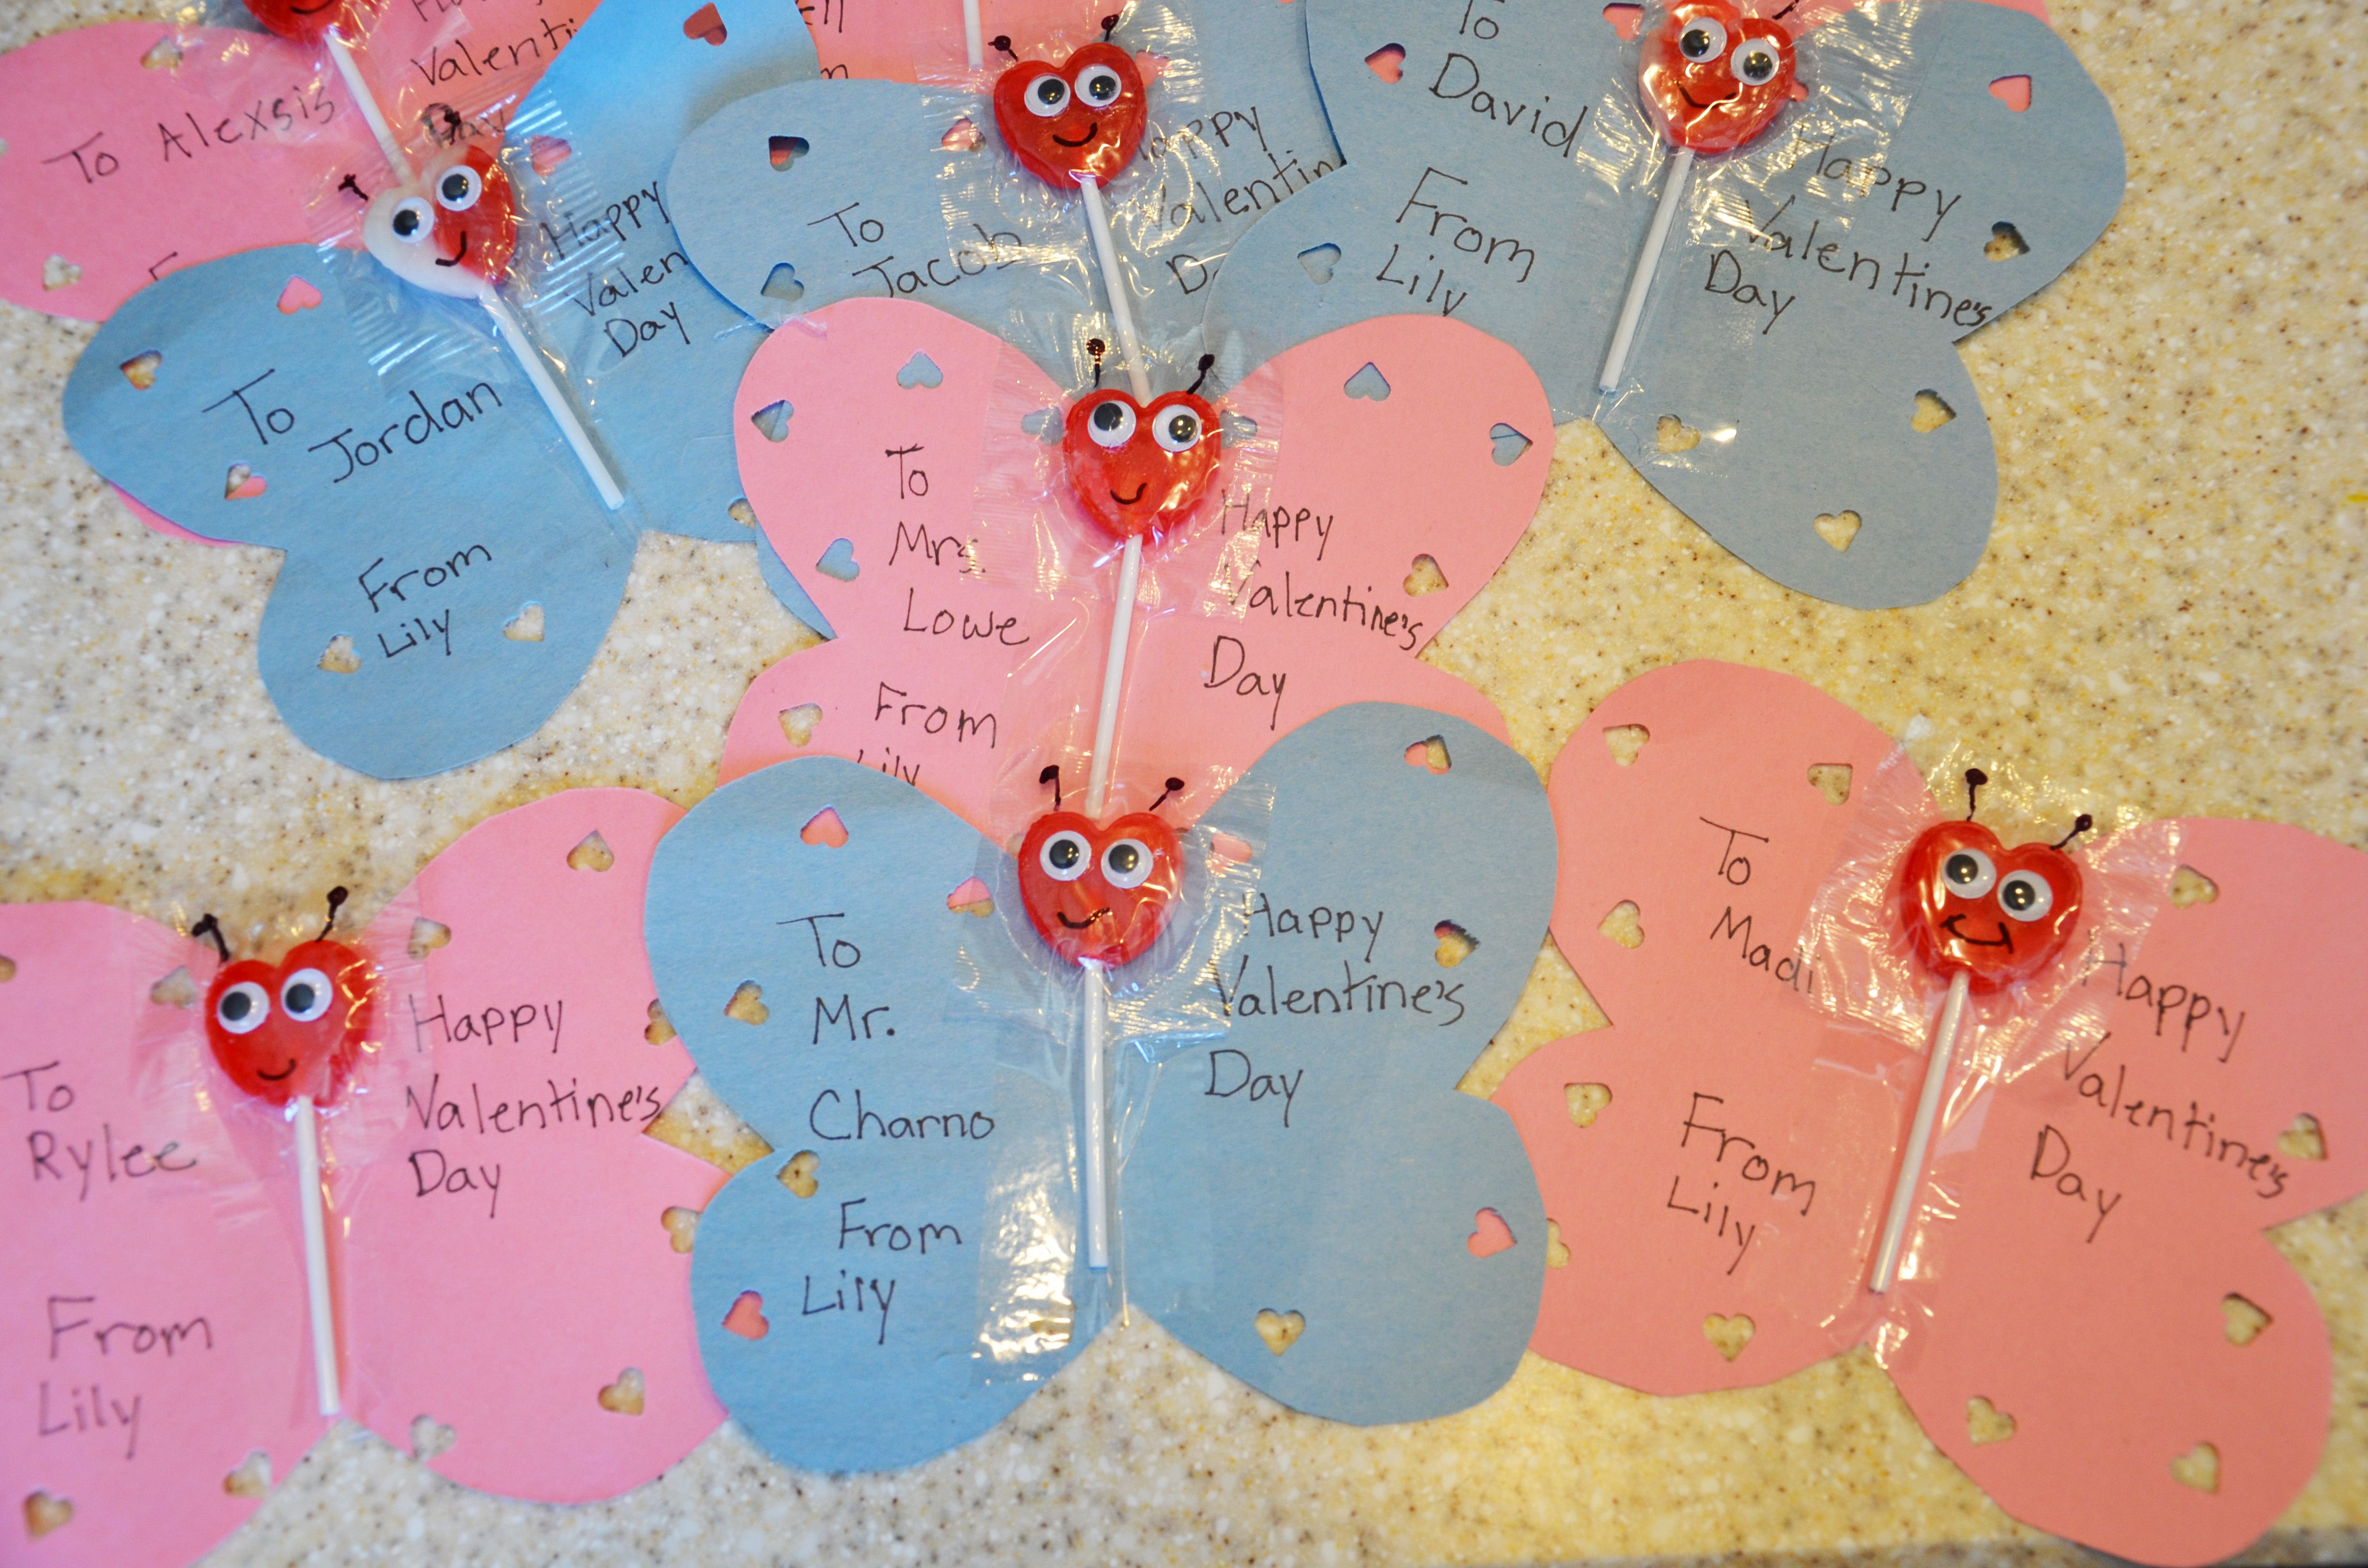 Homemade valentines easy and cute valentineus day pinterest